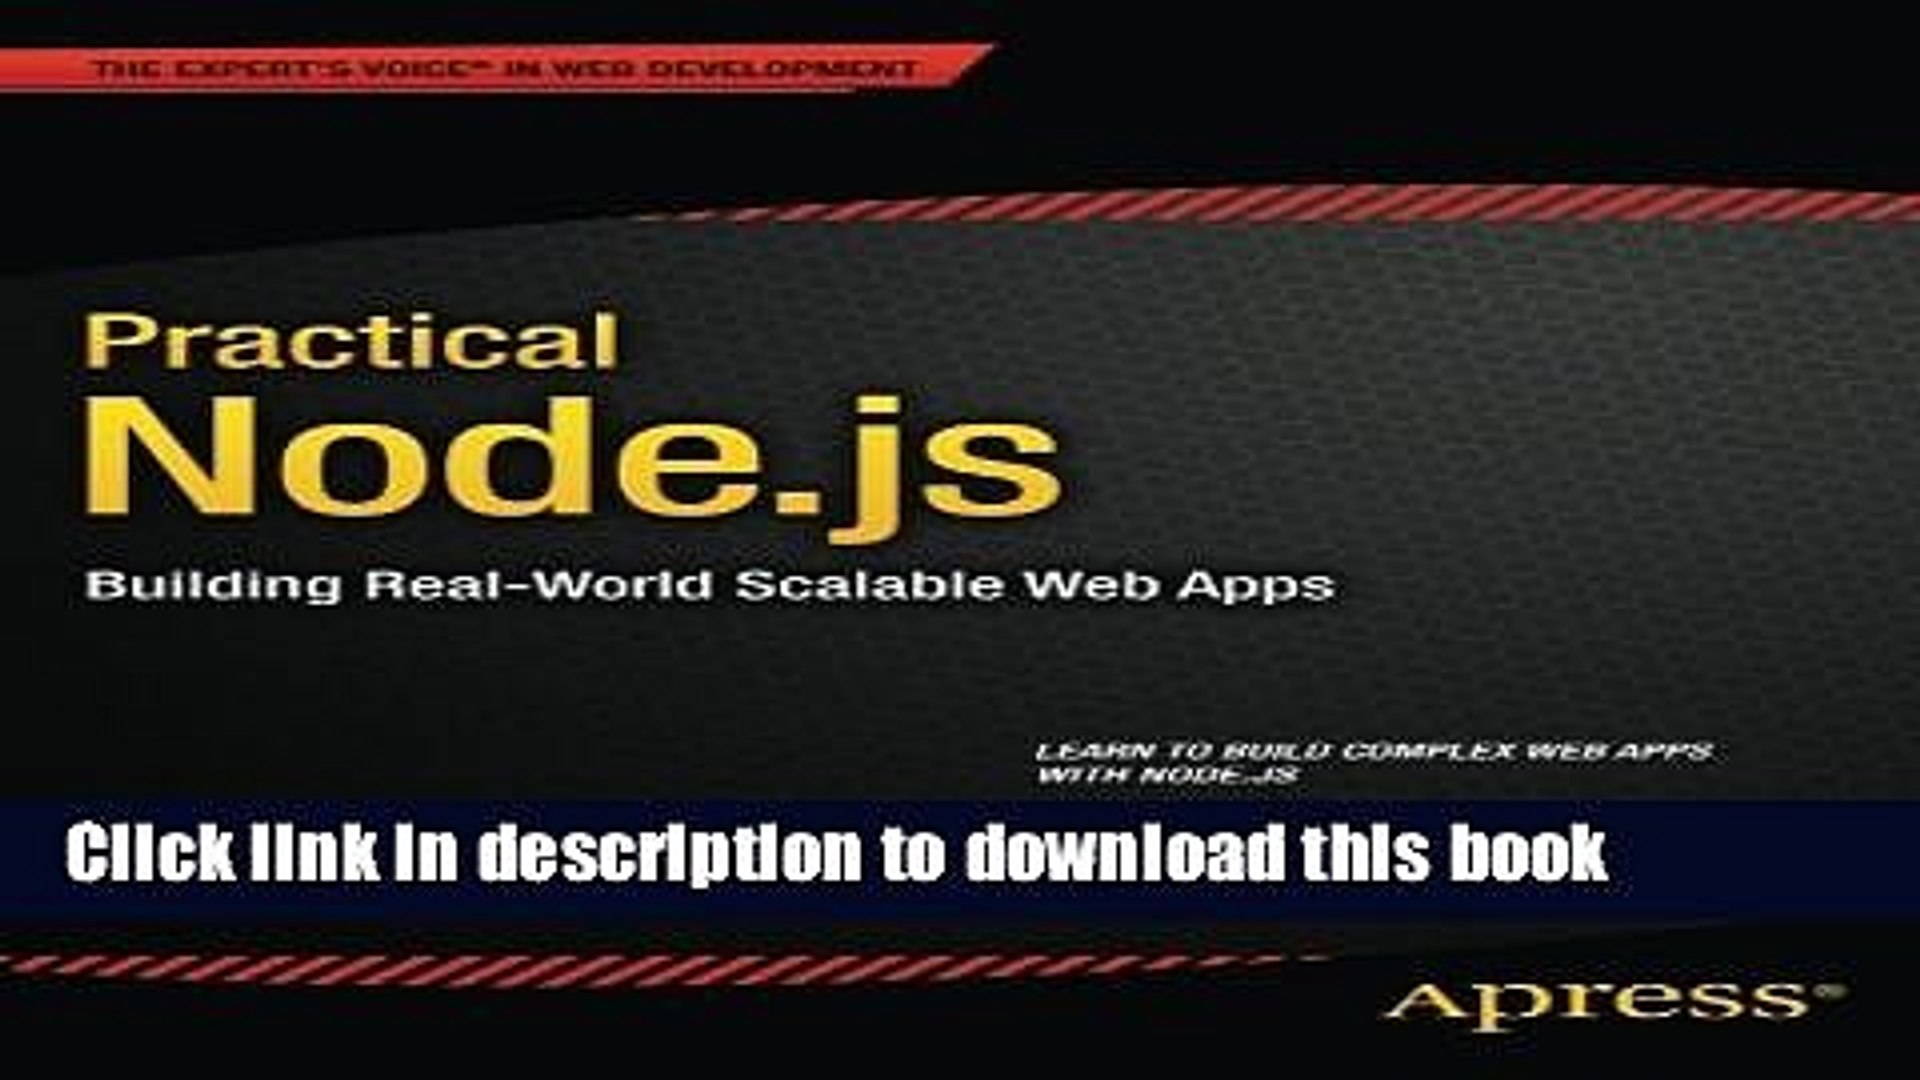 Building Real-World Scalable Web Apps